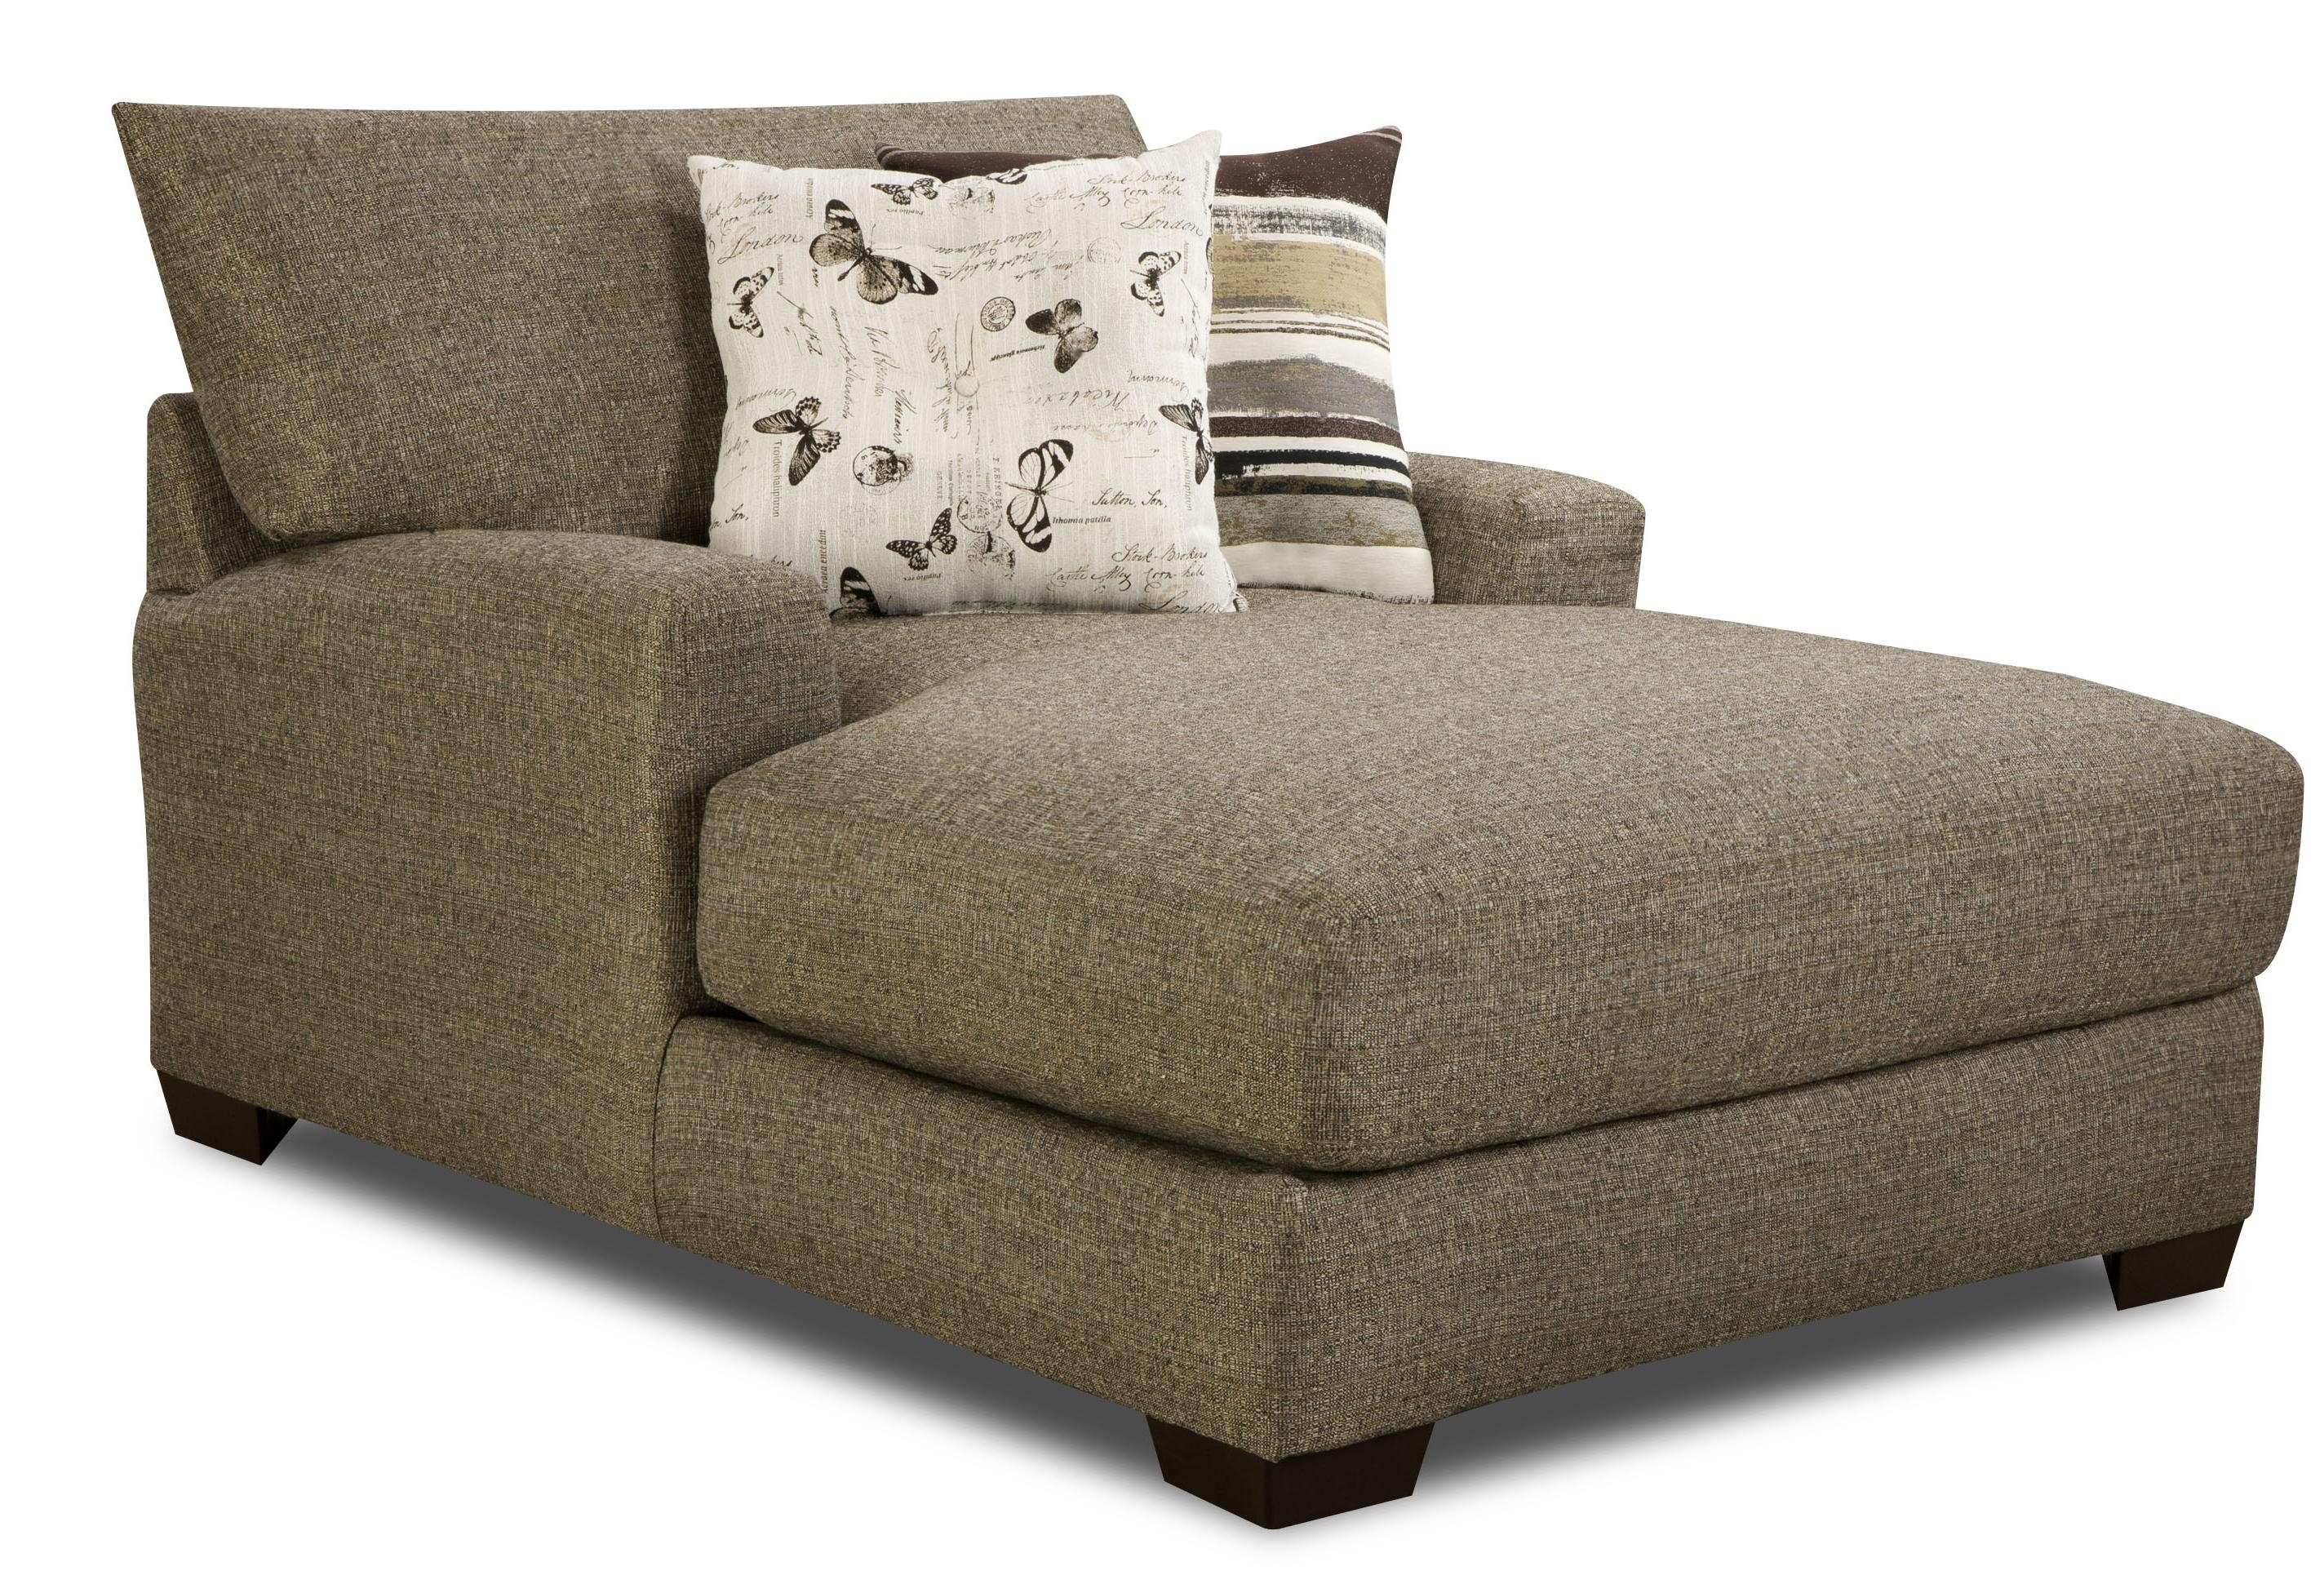 Furniture Microfiber Chaise Lounge For Comfortable Sofa Design With Wide Sofa Chairs (Image 4 of 15)